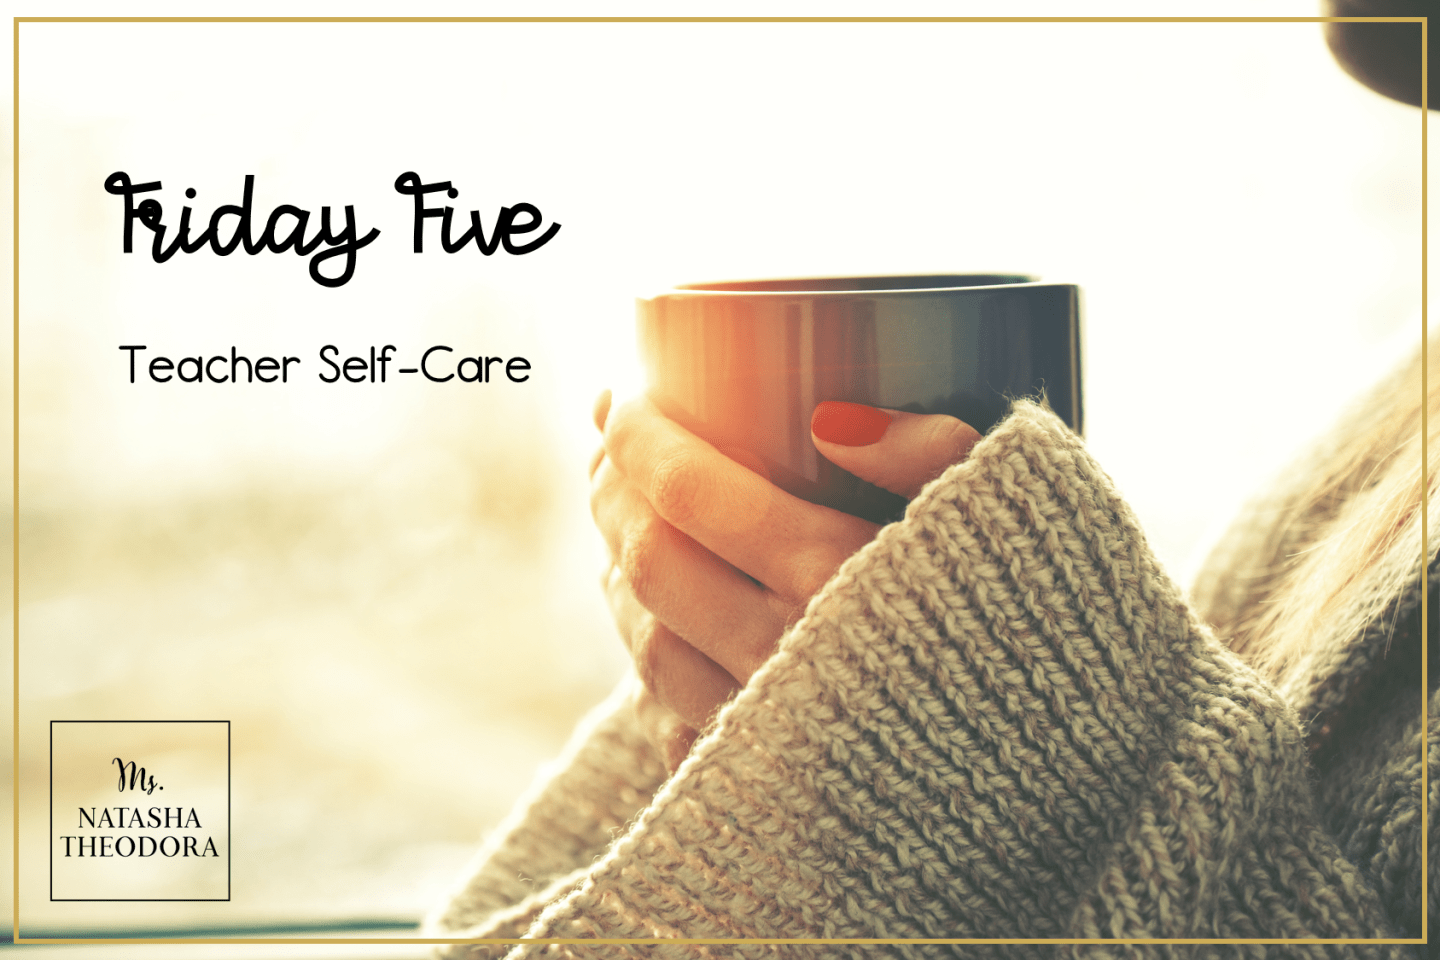 Friday Five: Teacher Self-Care